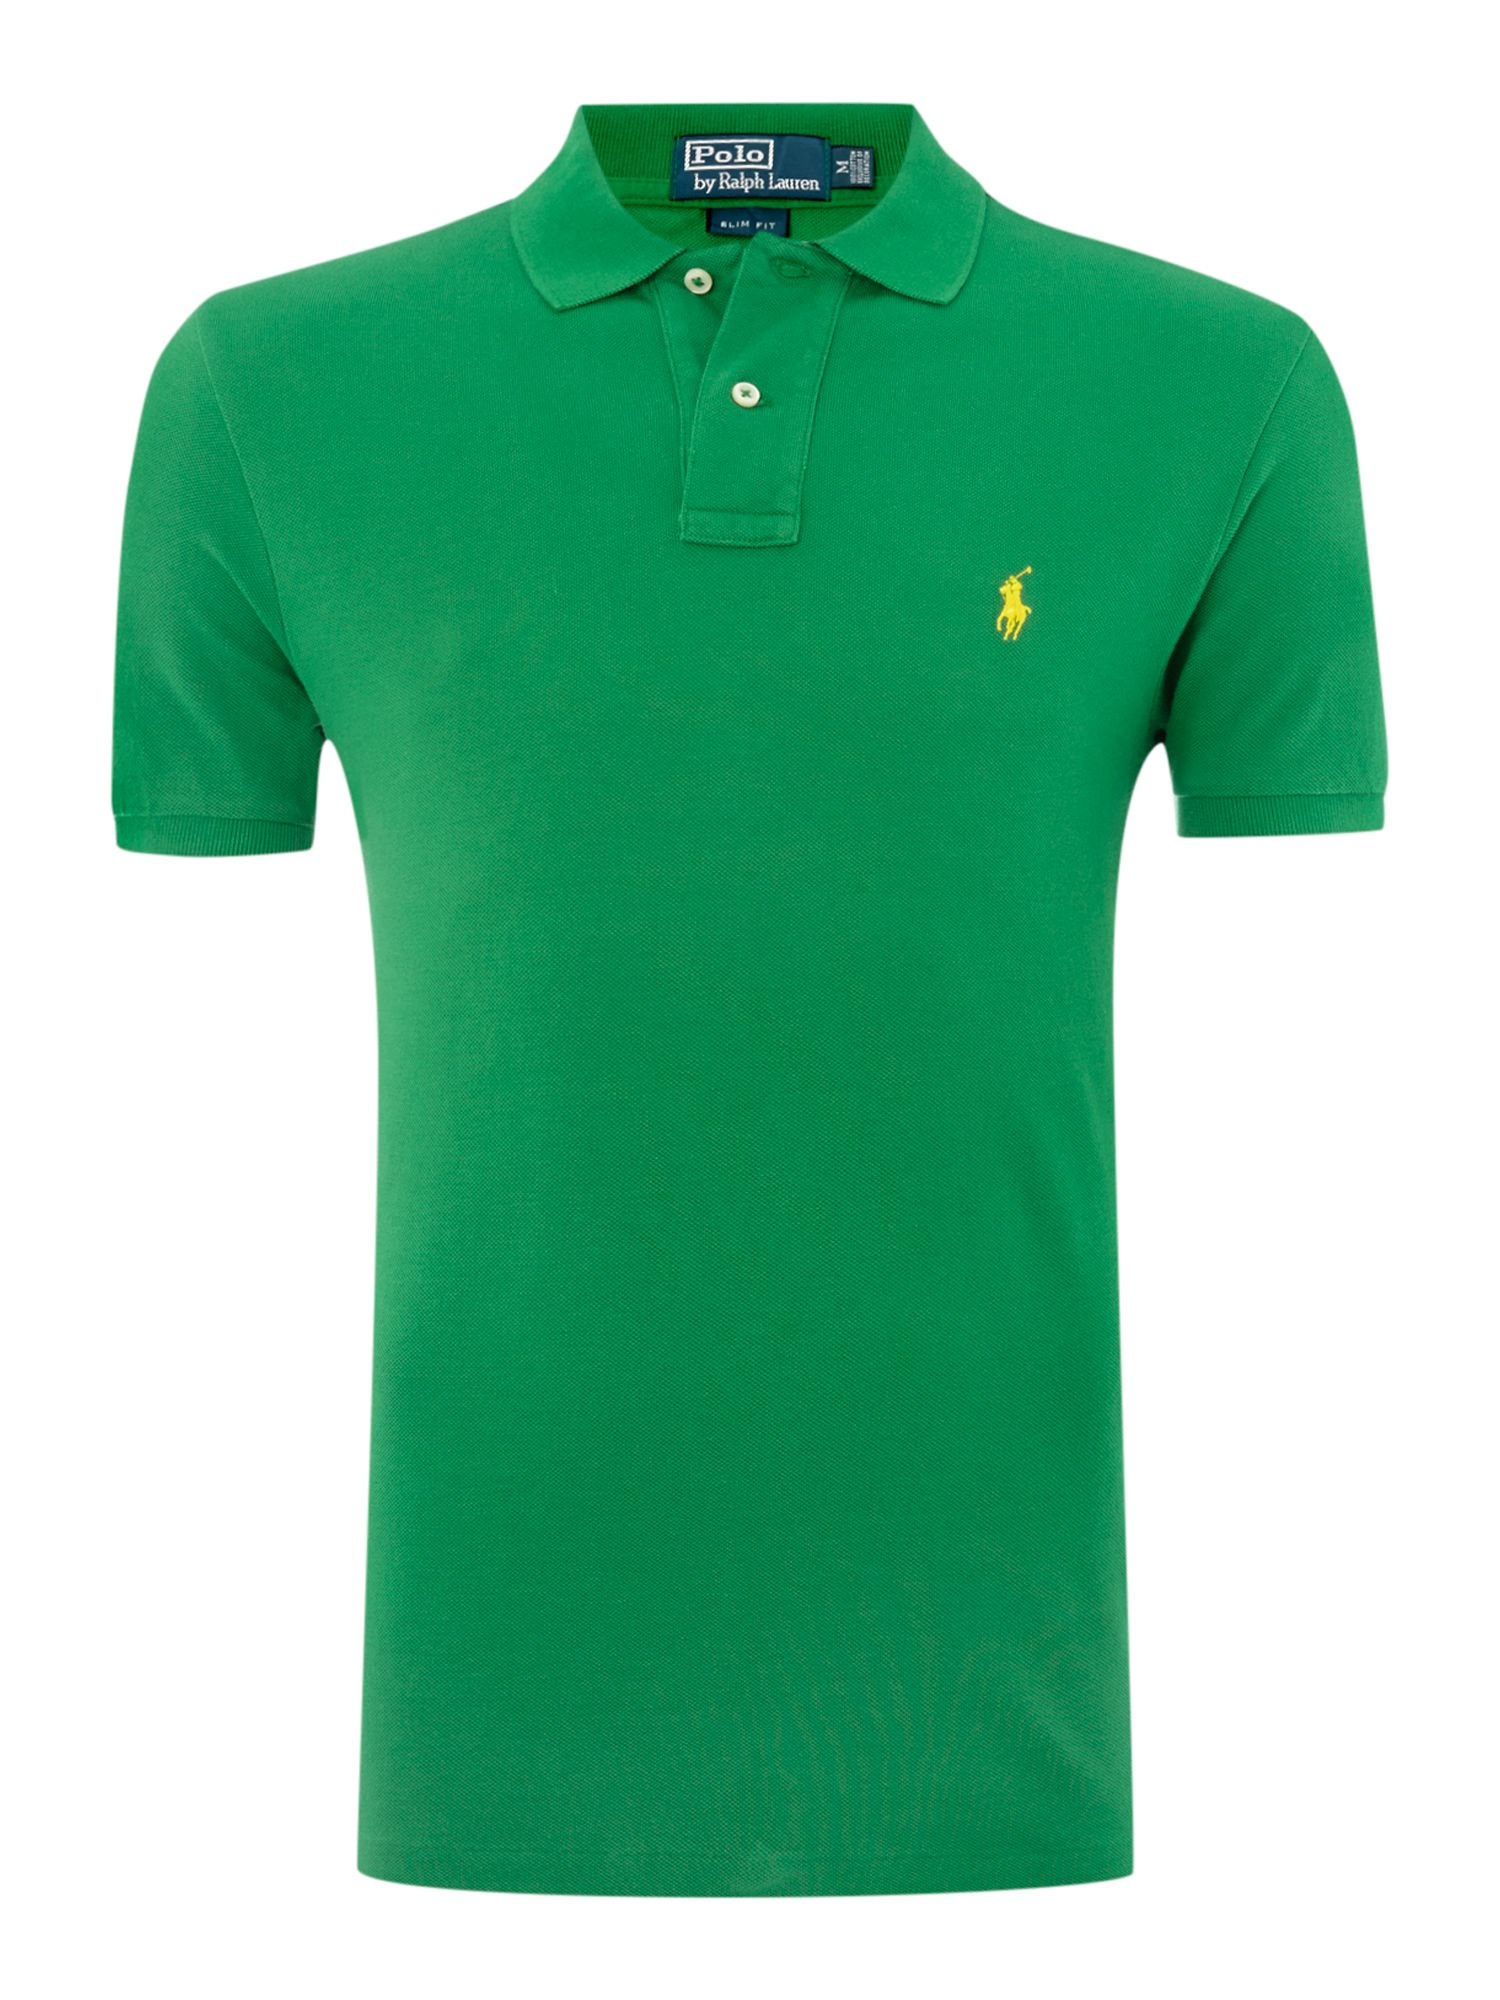 Slim fit polo shirt